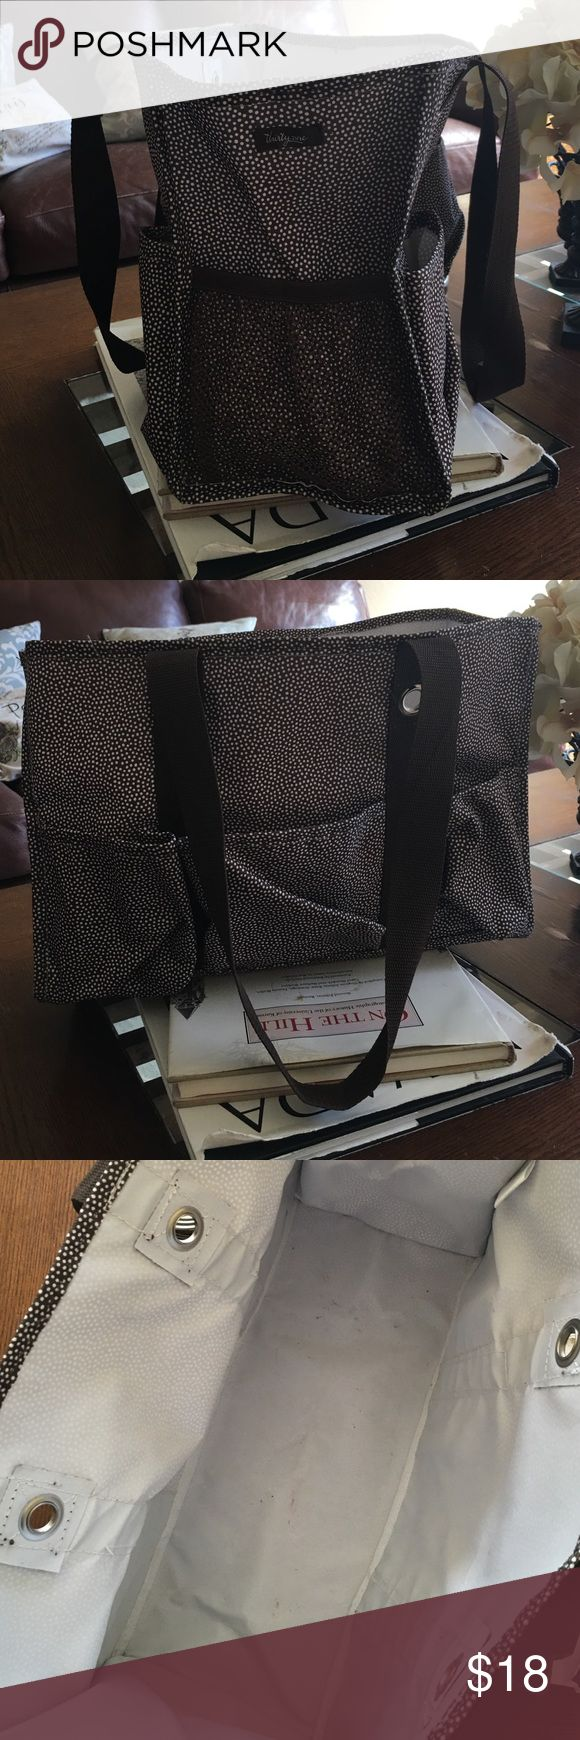 Thirty One Utility Tote Great condition. A few marks inside the bottom but may be washable. 8 outside pockets. Brown with white dots Thirty One Bags Totes